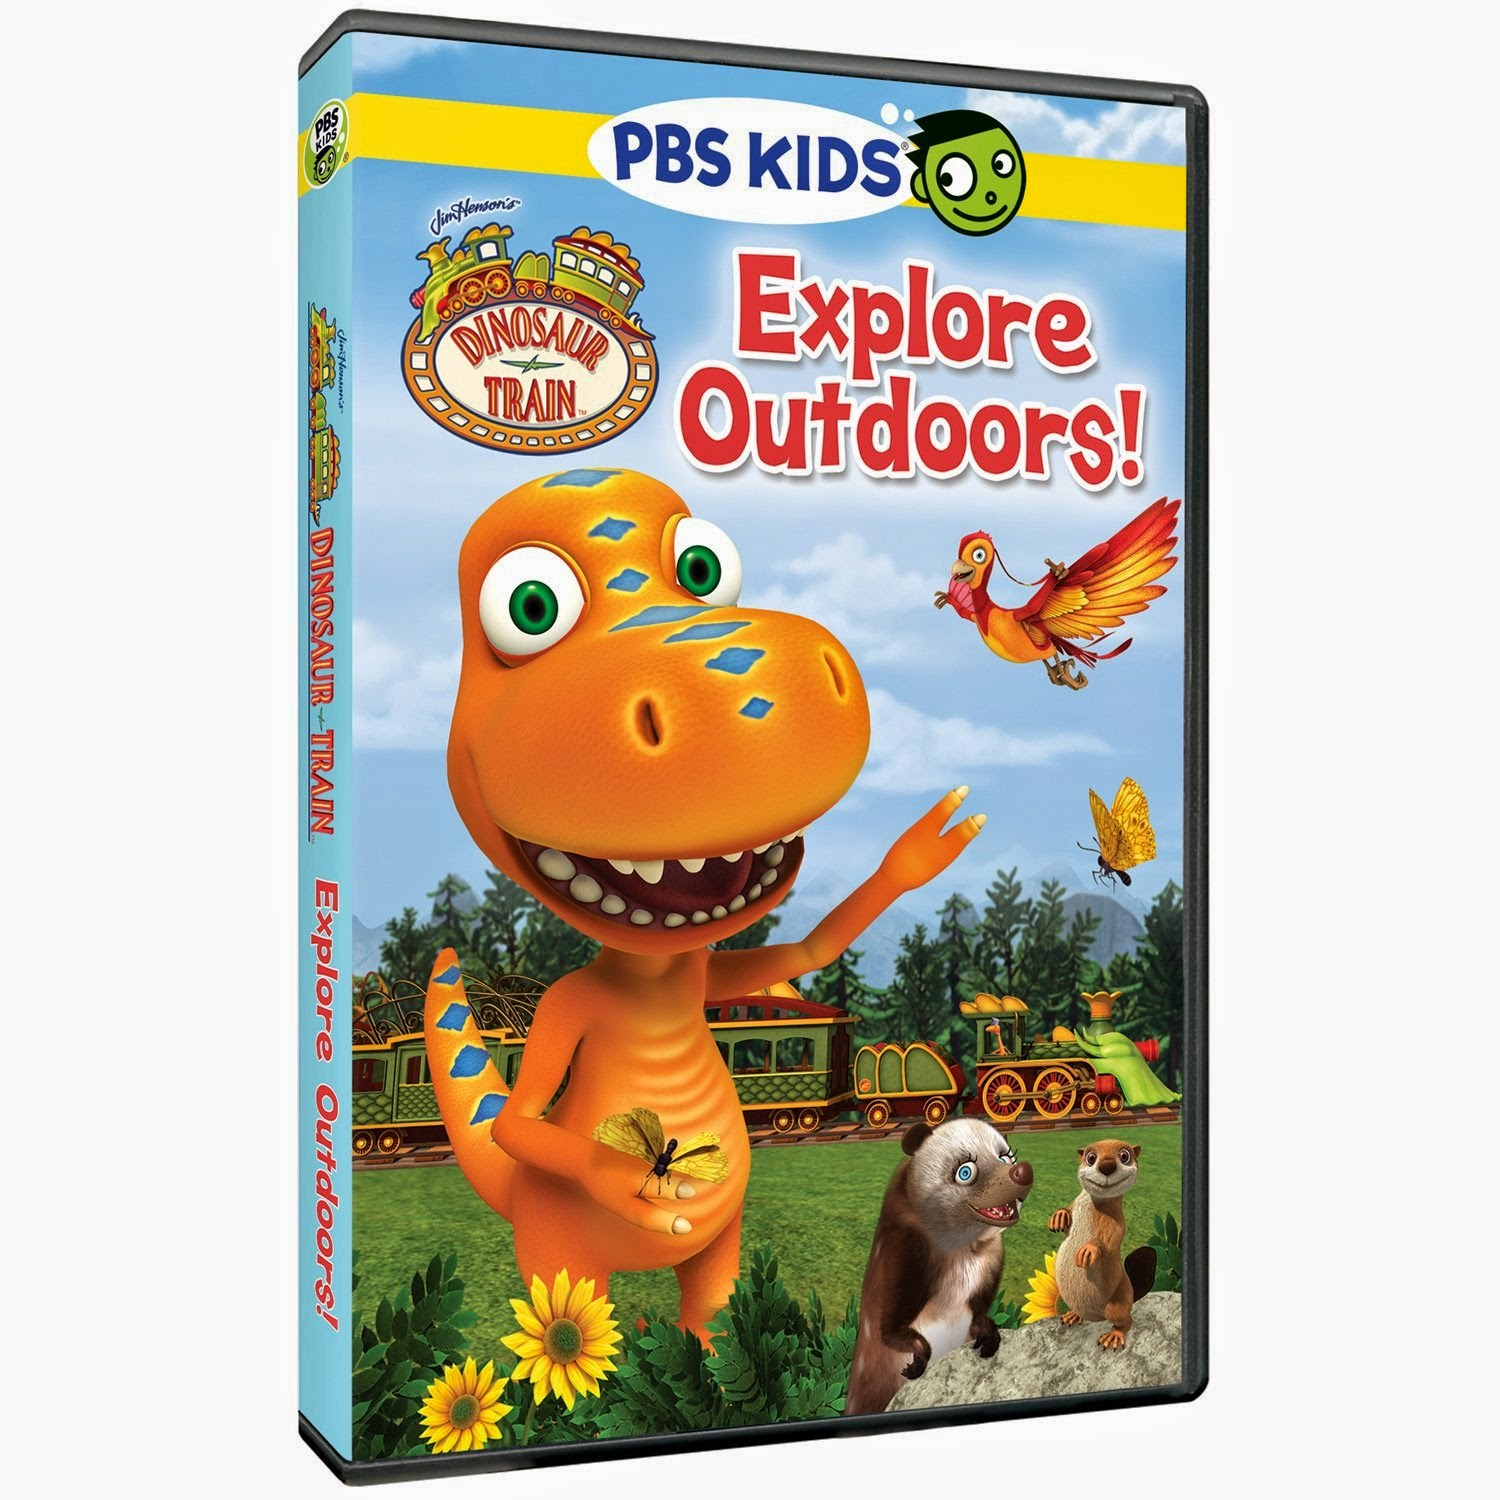 A RUP LIFE PBS KIDS Dinosaur Train